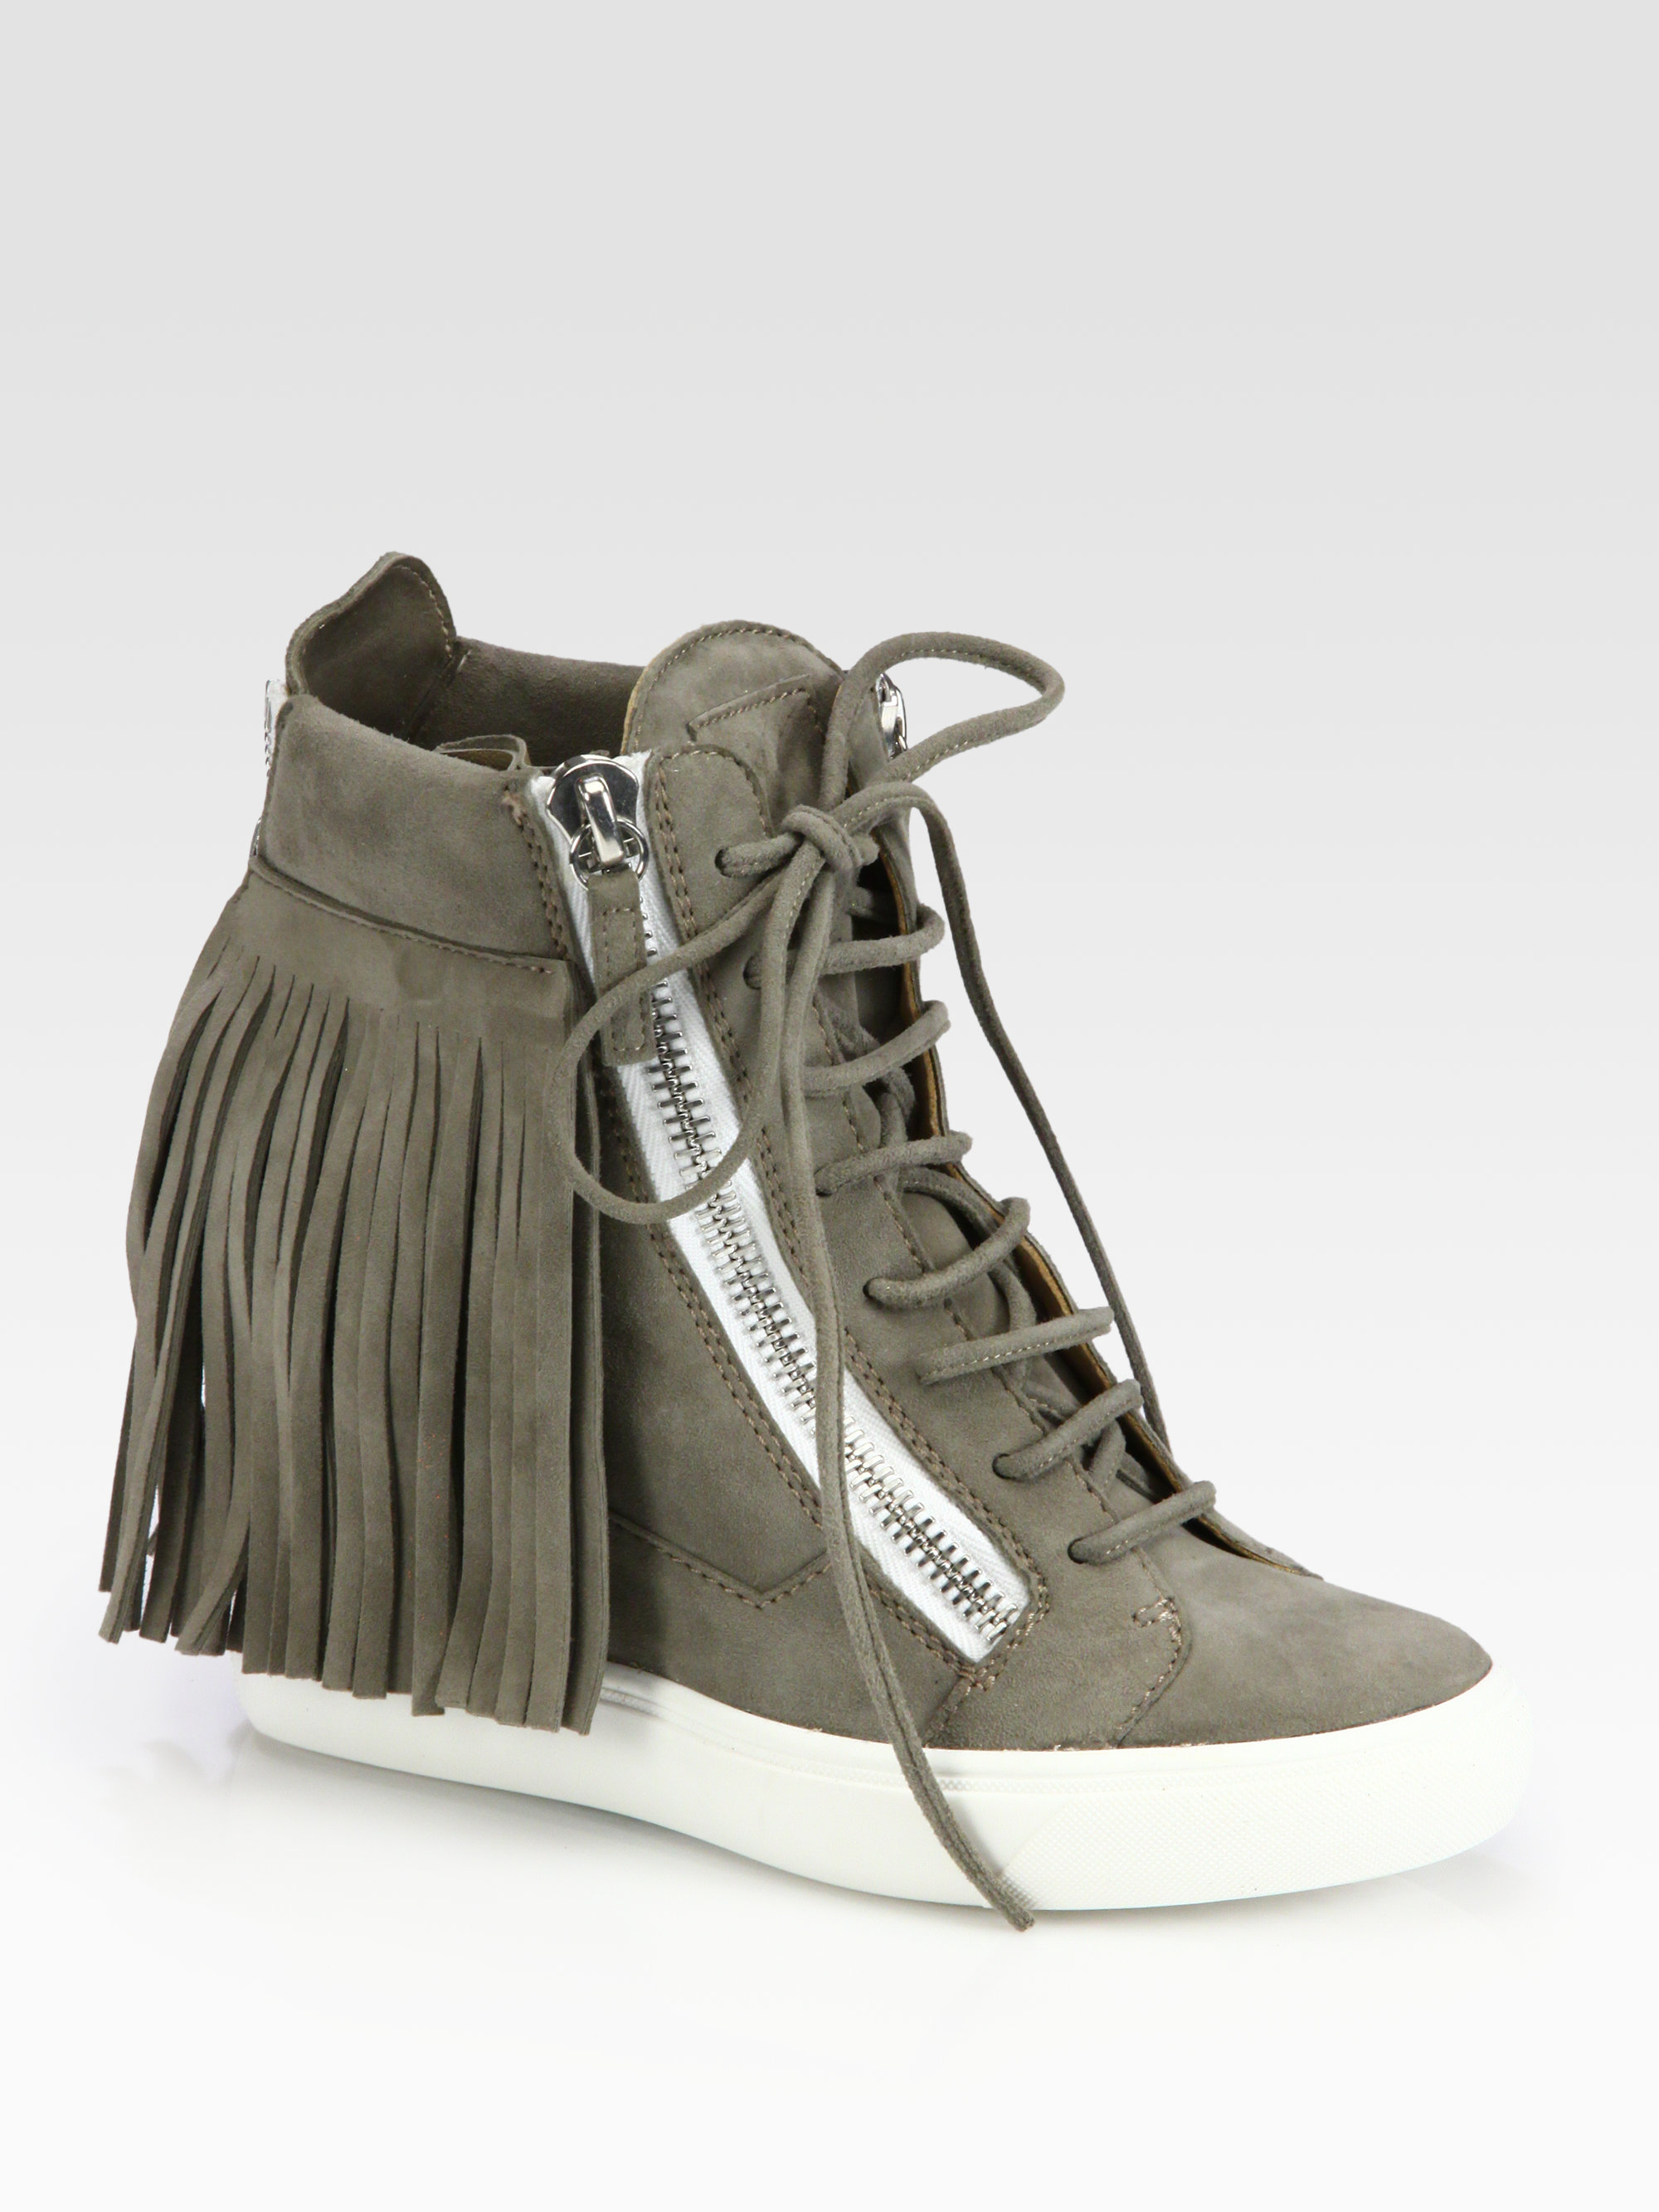 746a387c6294a Giuseppe Zanotti Suede Fringe Wedge Sneakers in Brown - Lyst